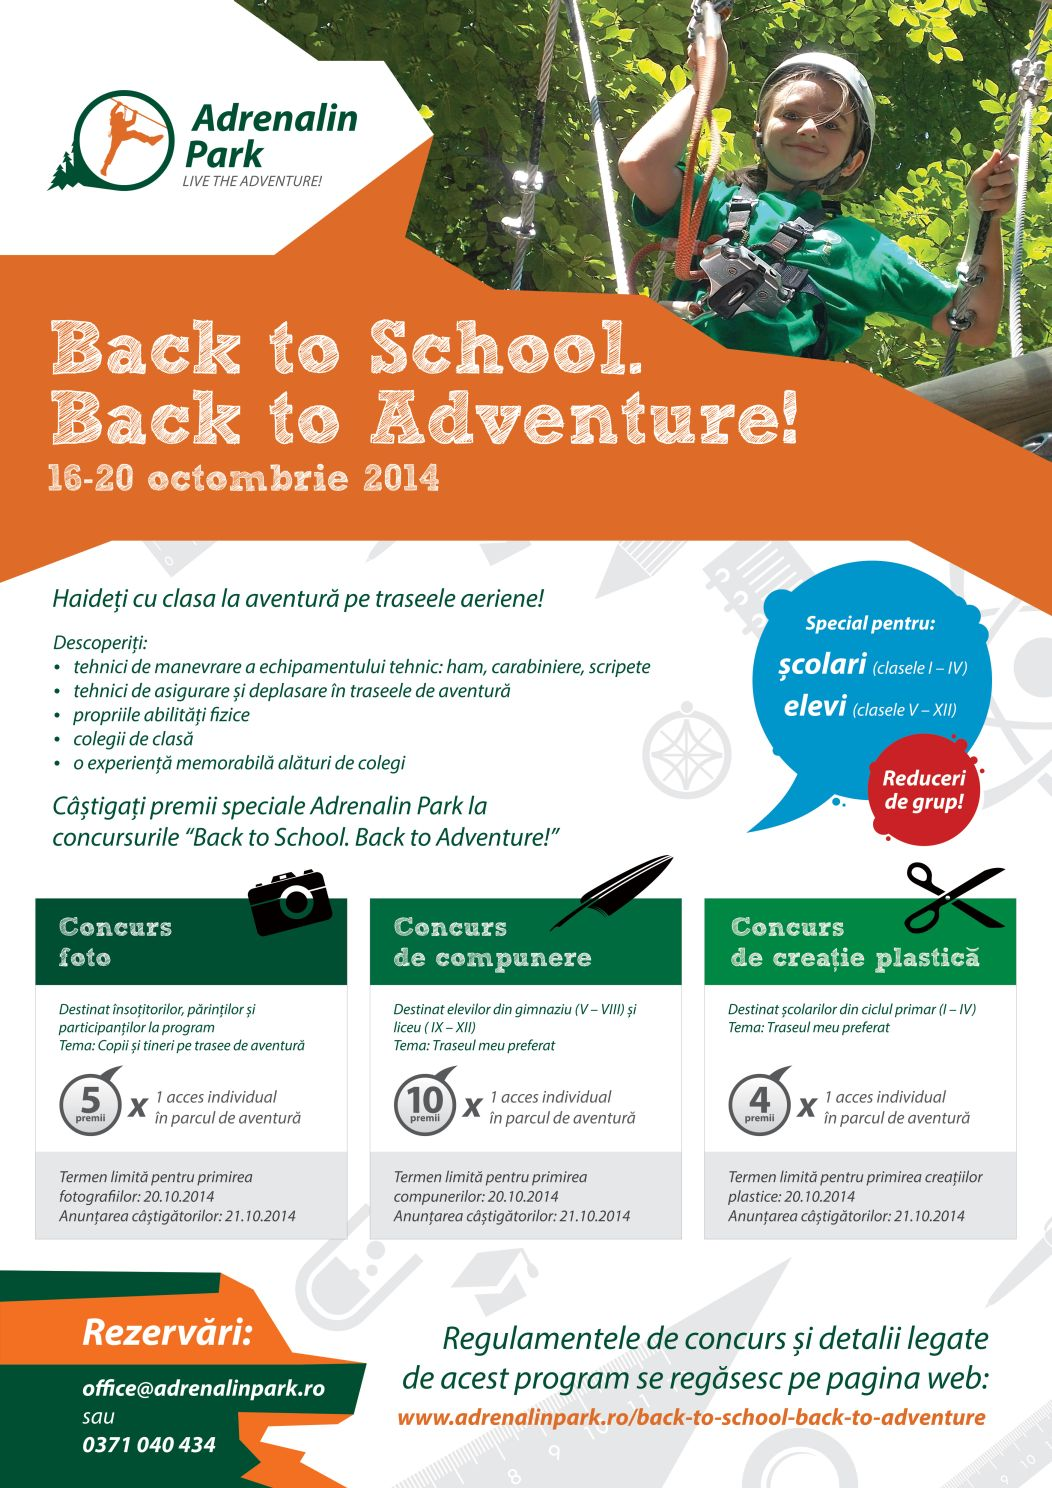 Adrenalin Park activitati par aventura Back-to-school-Back-to-Adventure